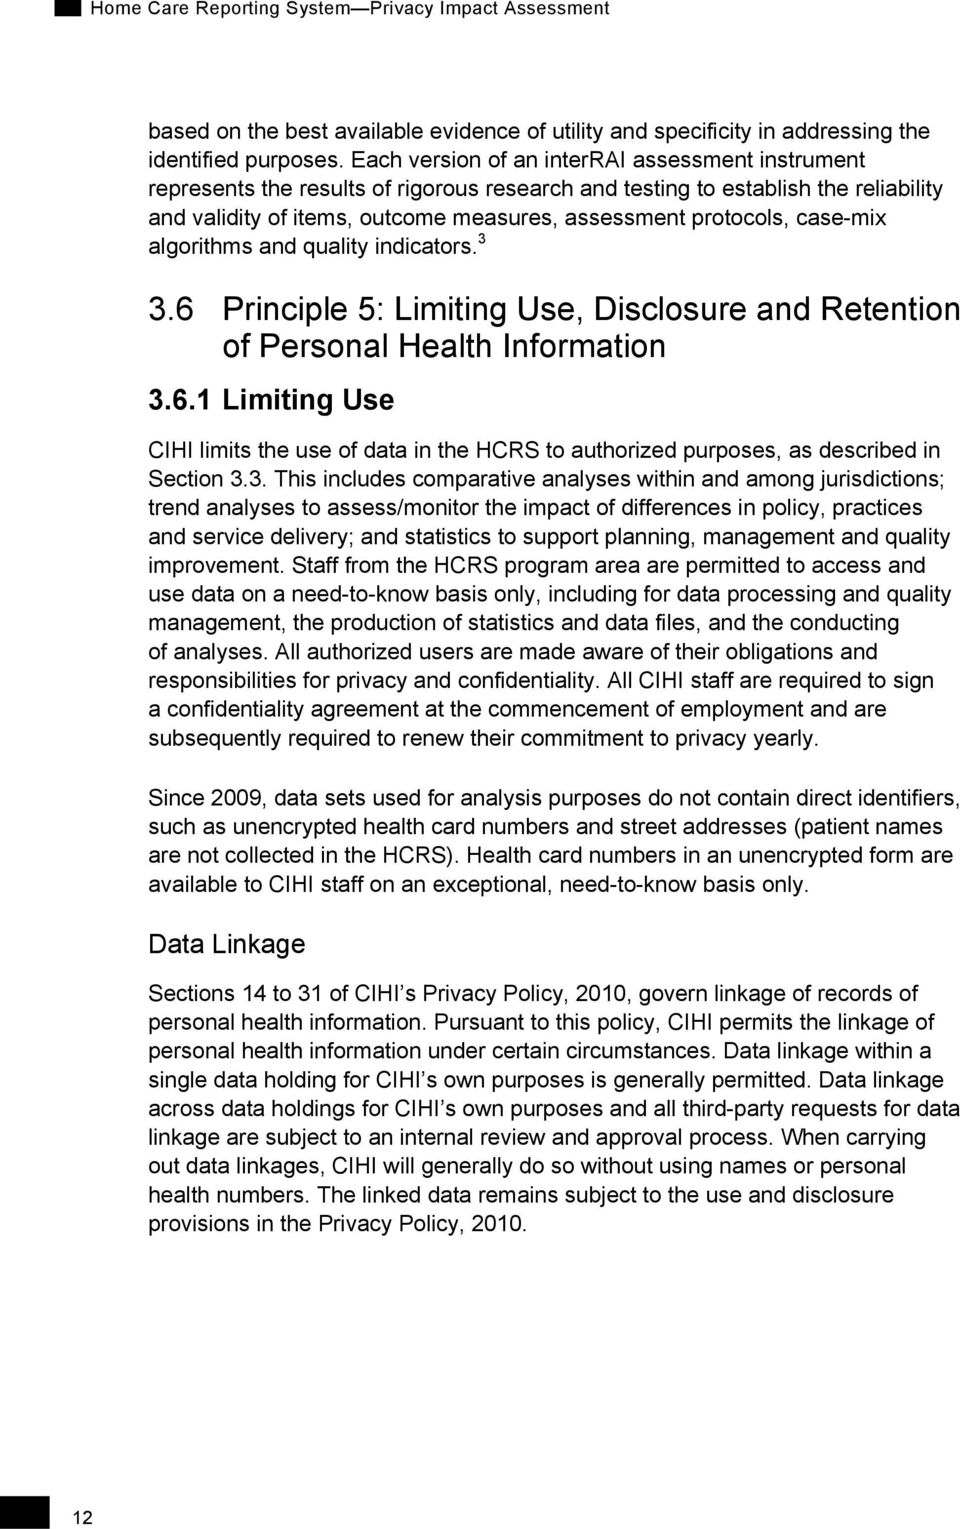 case-mix algorithms and quality indicators. 3 3.6 Principle 5: Limiting Use, Disclosure and Retention of Personal Health Information 3.6.1 Limiting Use CIHI limits the use of data in the HCRS to authorized purposes, as described in Section 3.